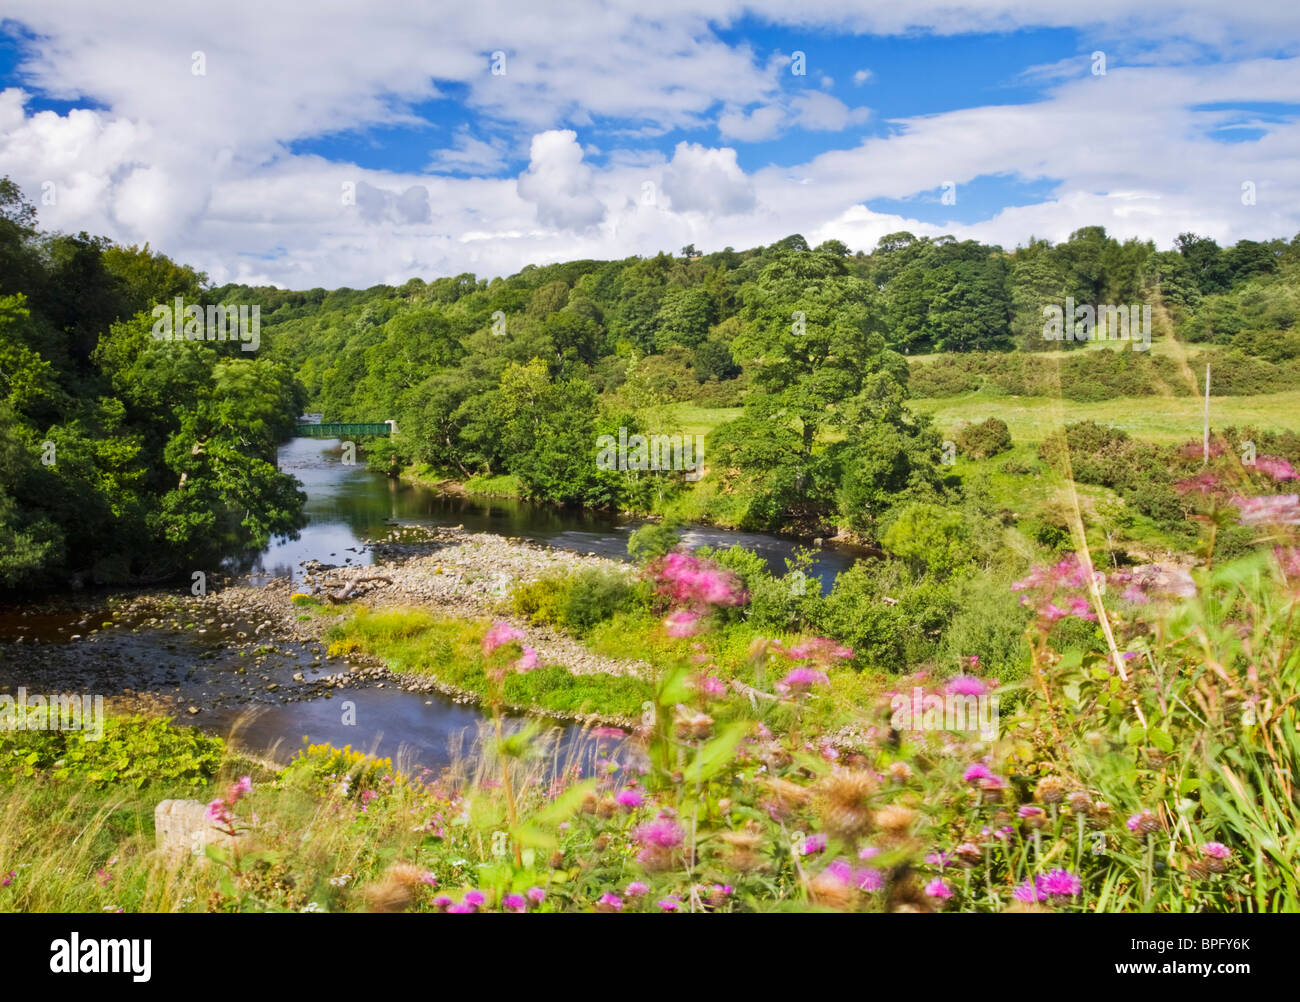 The River Tees near the village of Cotherstone, Teesdale, County Durham, England - Stock Image